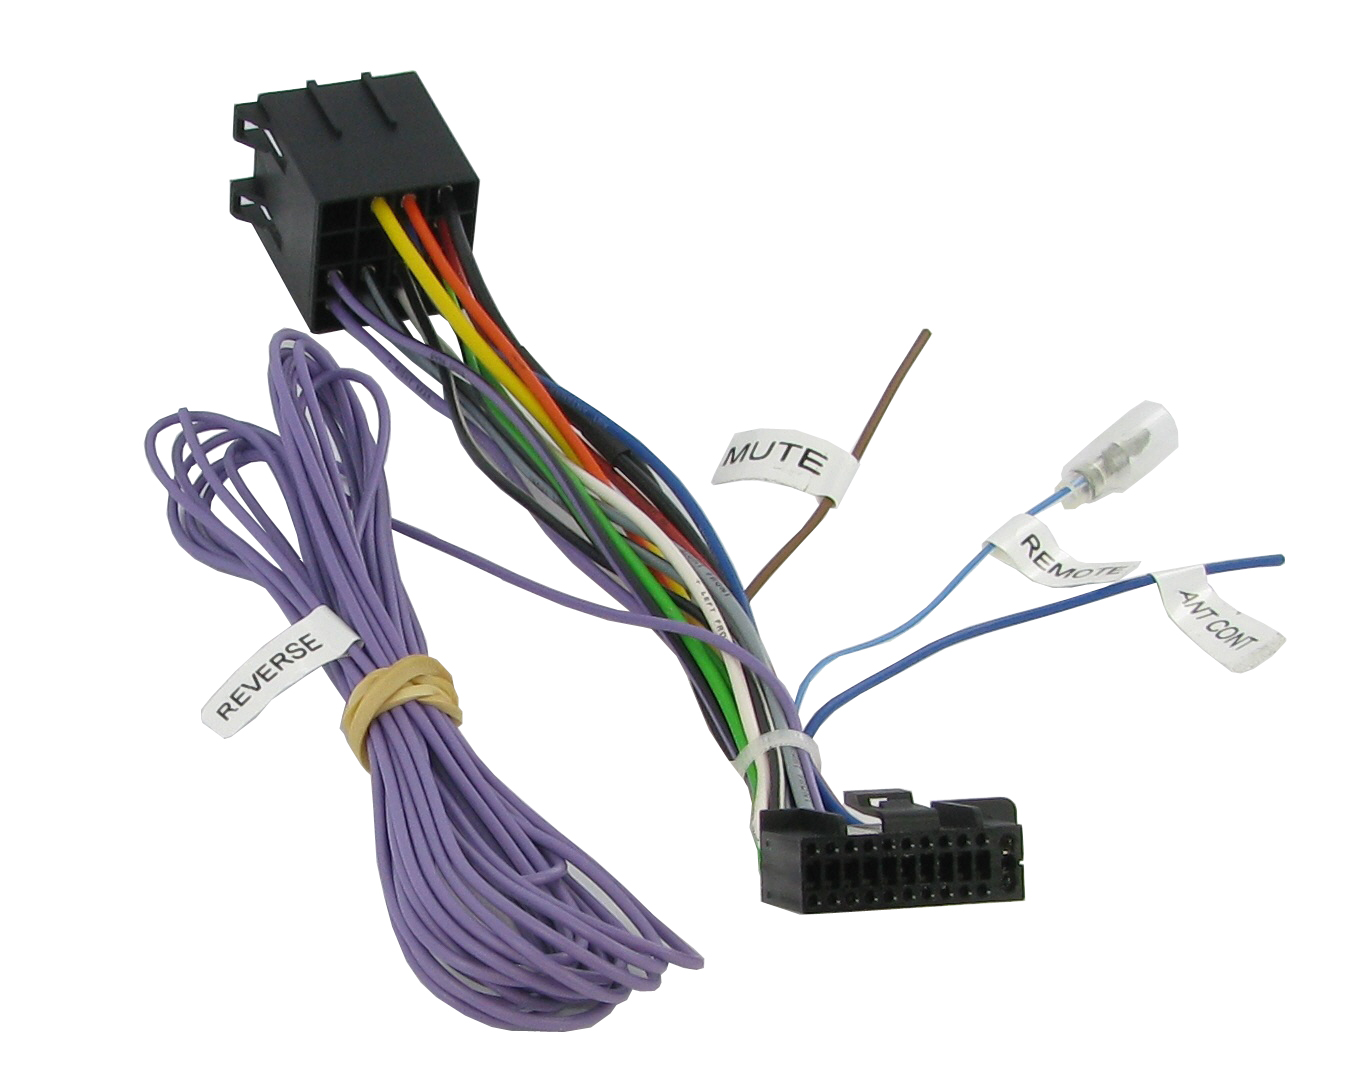 ct21kw05_s installer com kenwood category products category kenwood kdc x599 wiring harness at nearapp.co